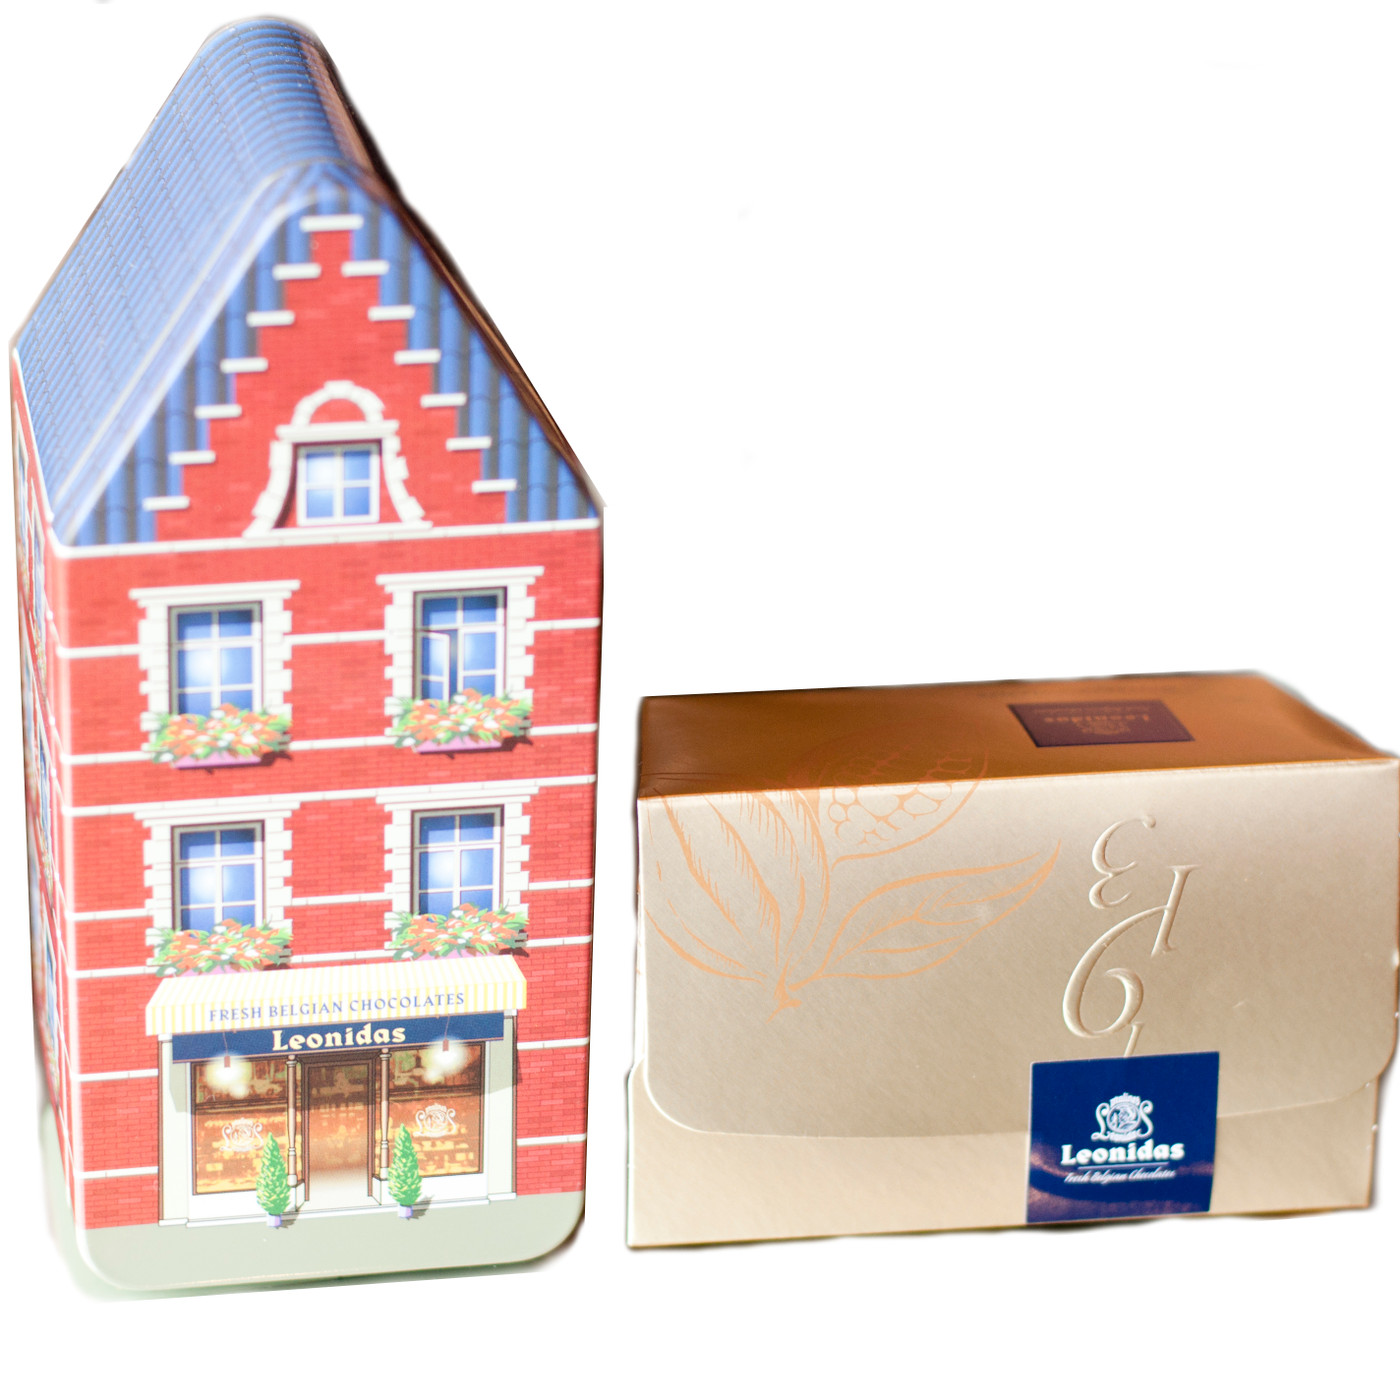 Belgian Tin House with 250g (8.8 oz) ballotin